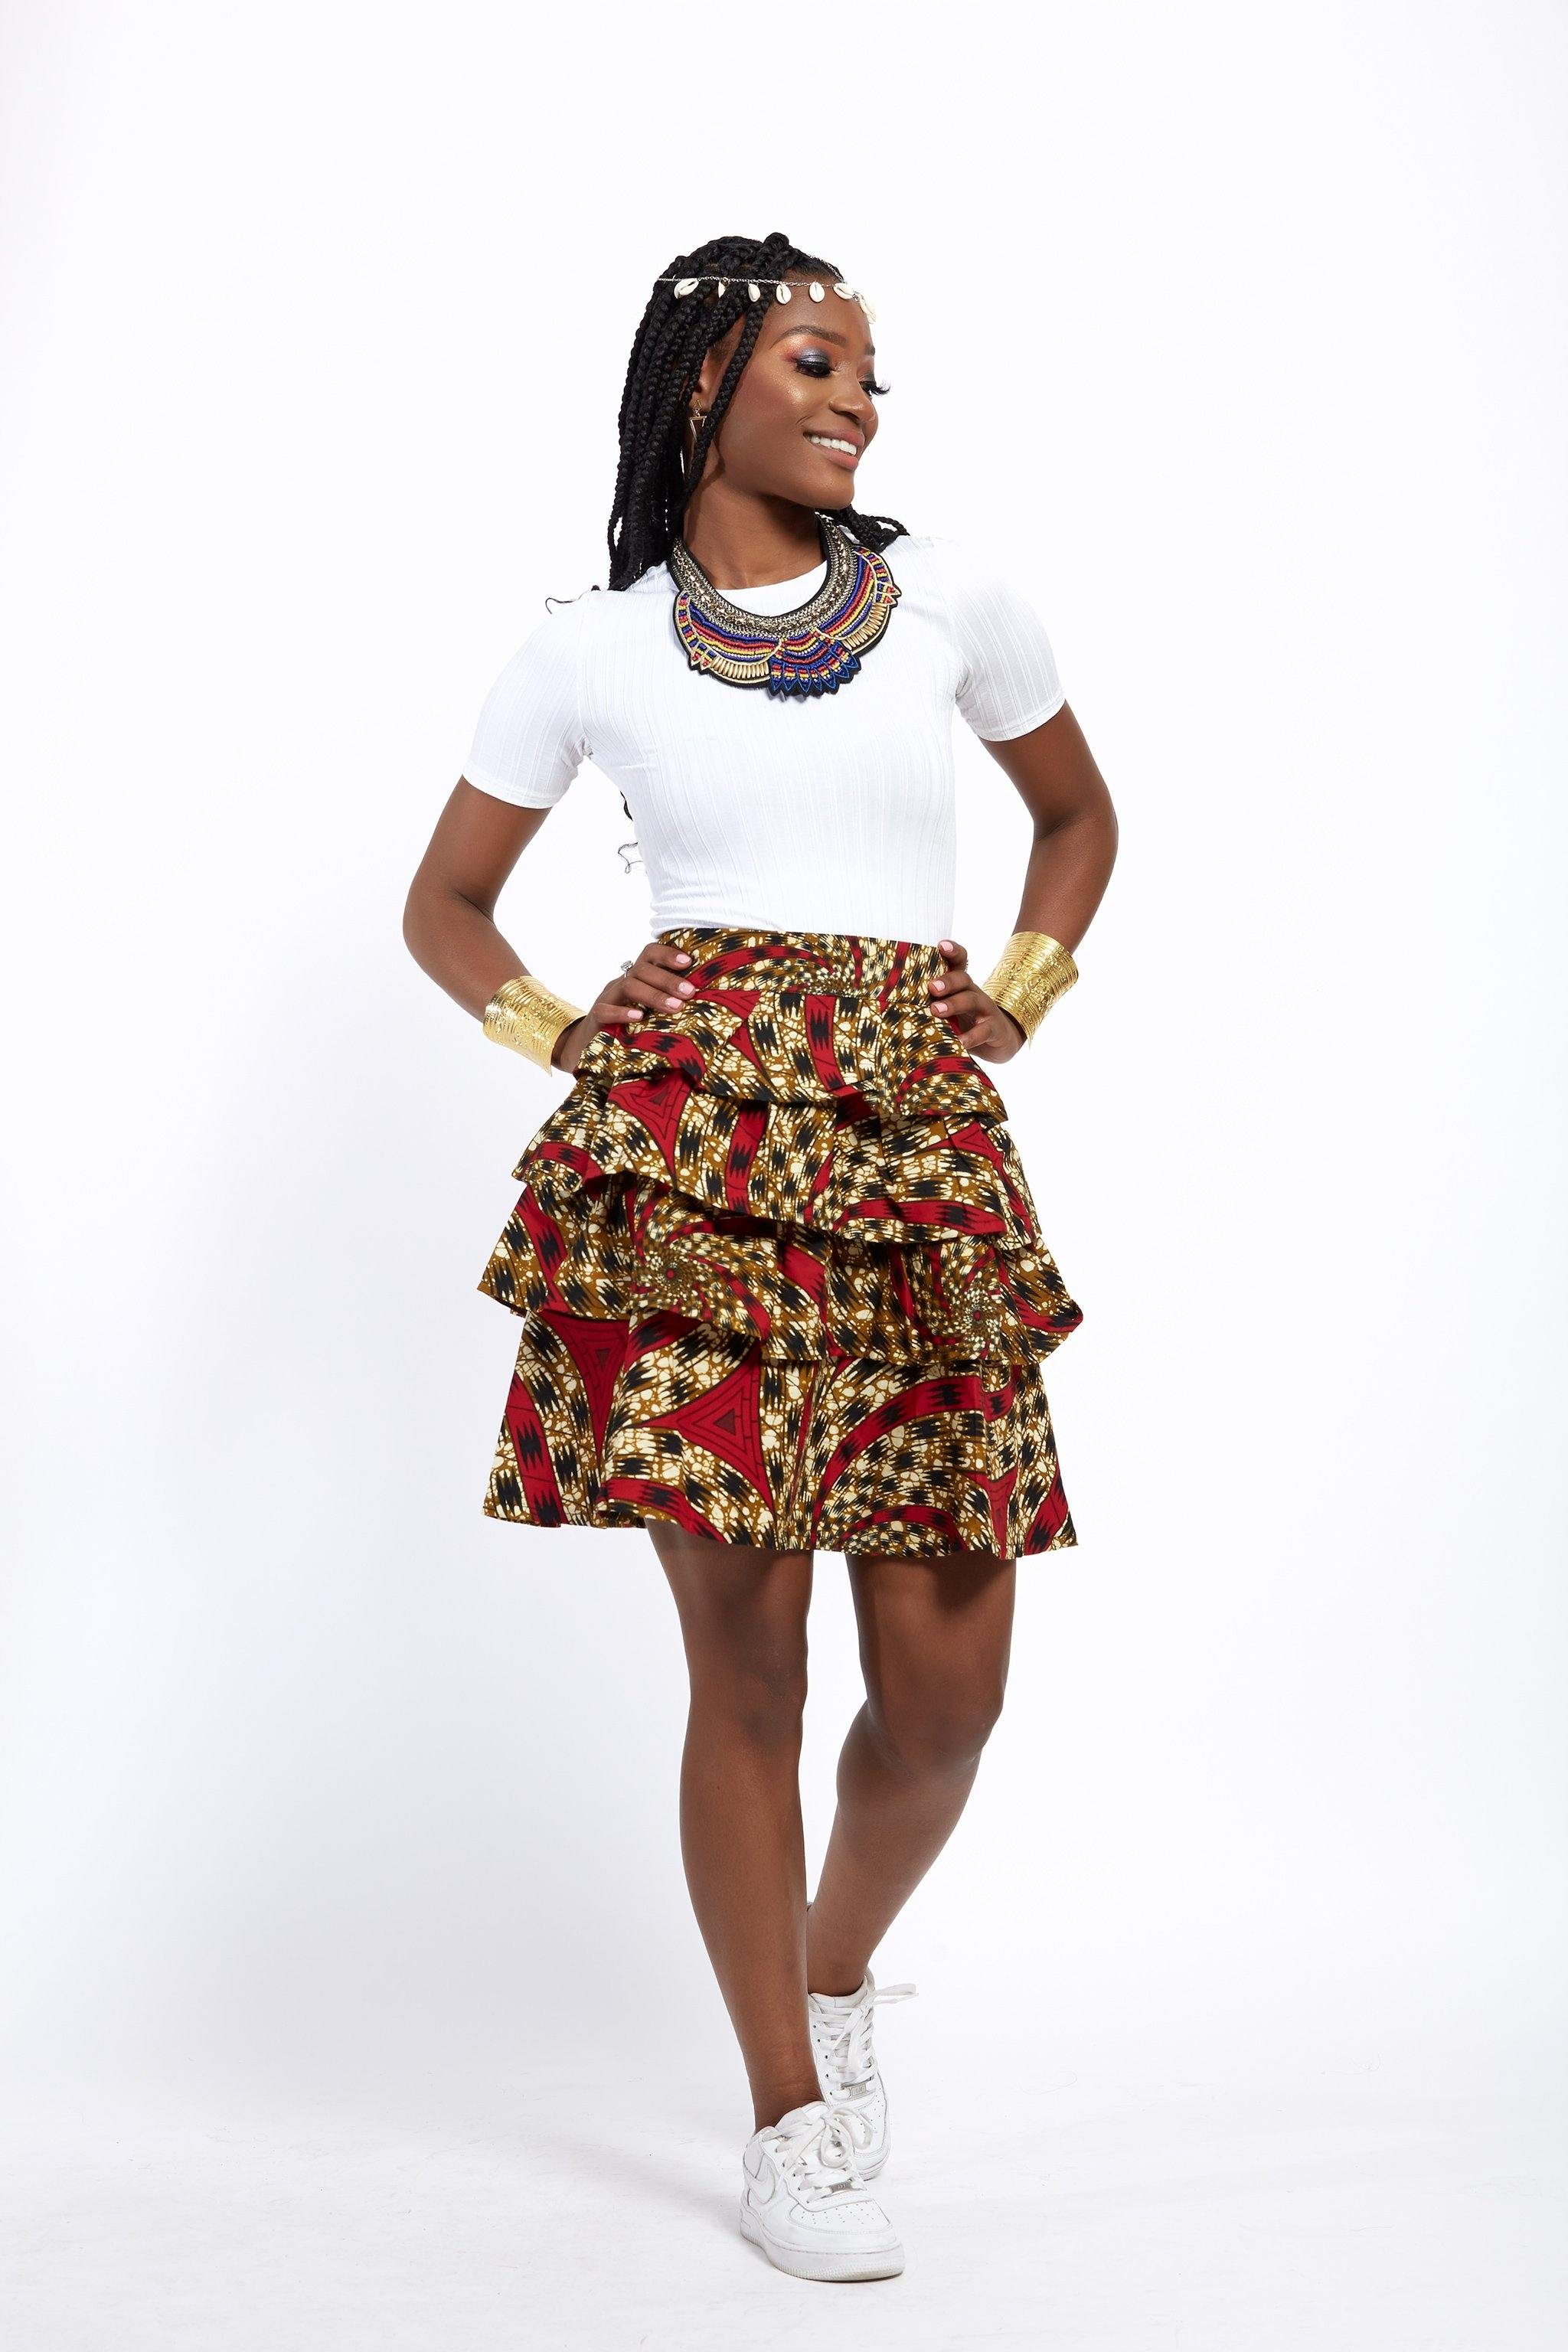 WAA- Ankara Tiered Mini Skirt - waafashion